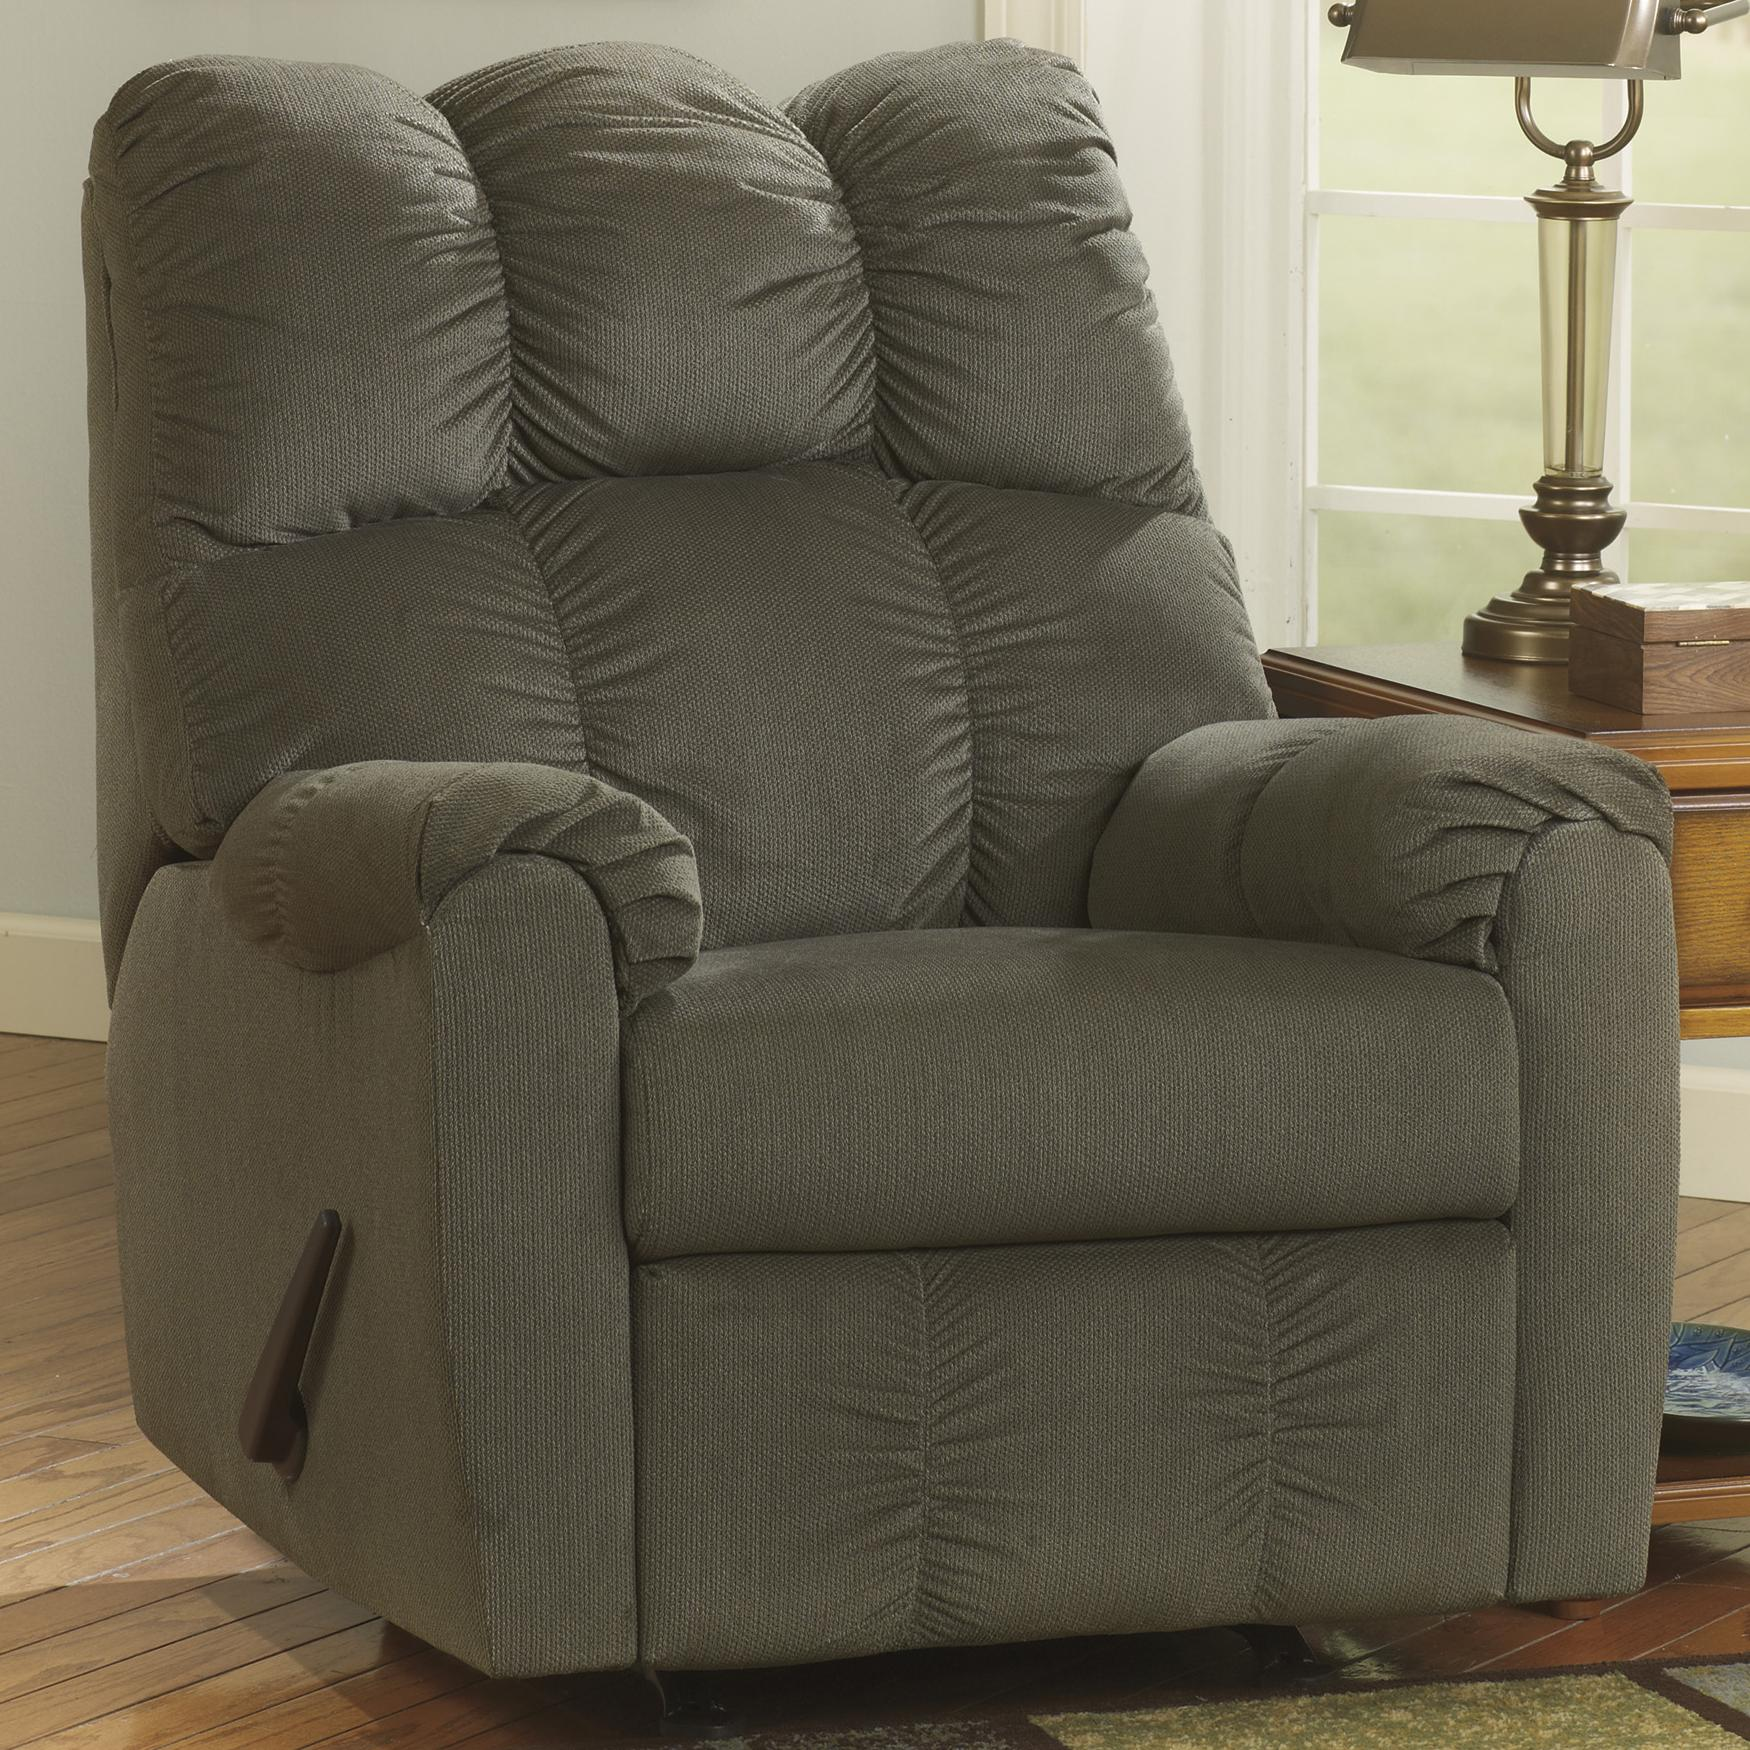 Signature Design by Ashley Raulo - Moss Rocker Recliner - Item Number: 1750225